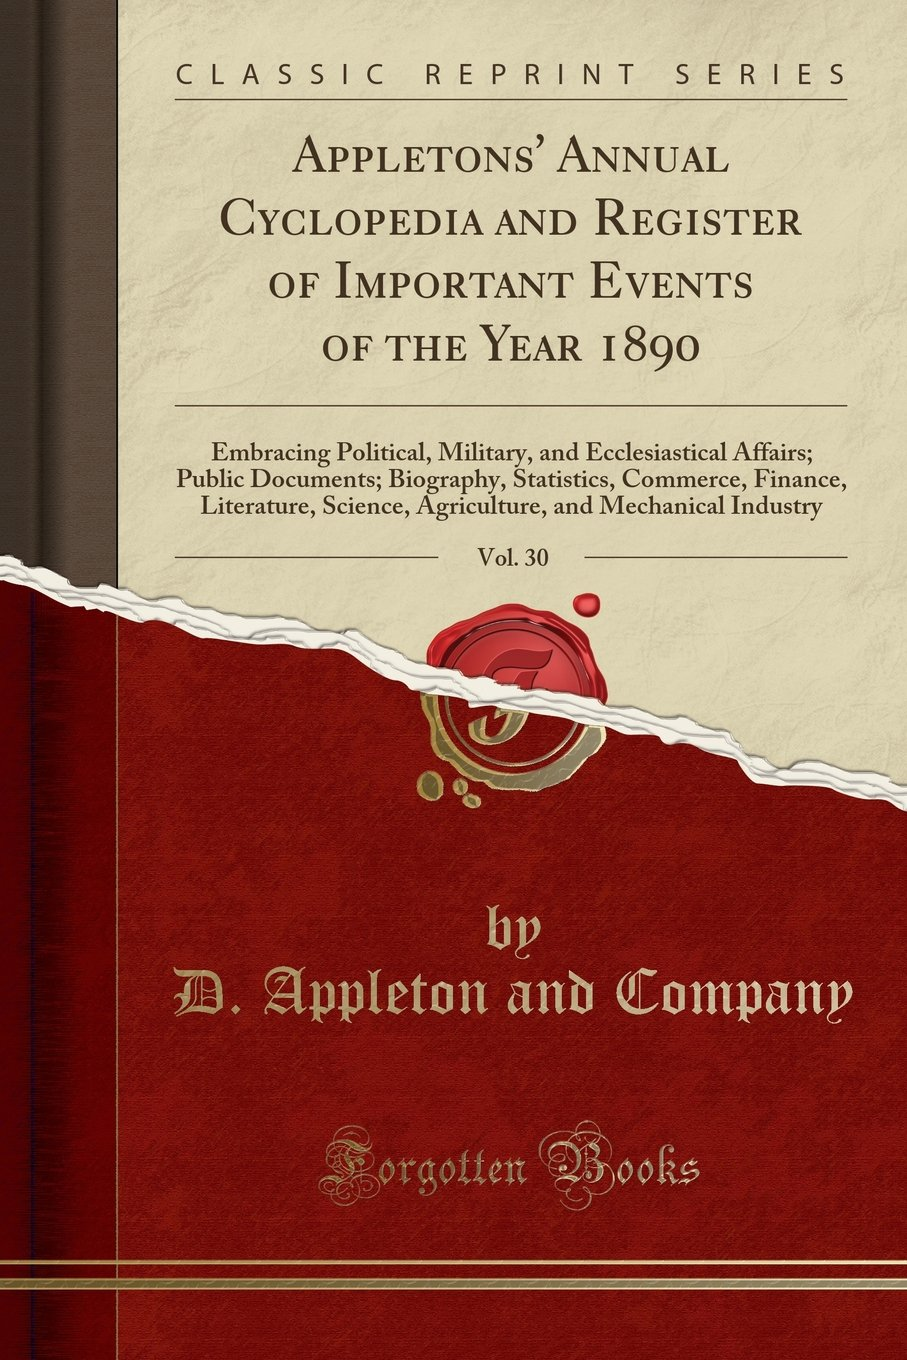 Download Appletons' Annual Cyclopedia and Register of Important Events of the Year 1890, Vol. 30: Embracing Political, Military, and Ecclesiastical Affairs; ... Science, Agriculture, and Mechanica pdf